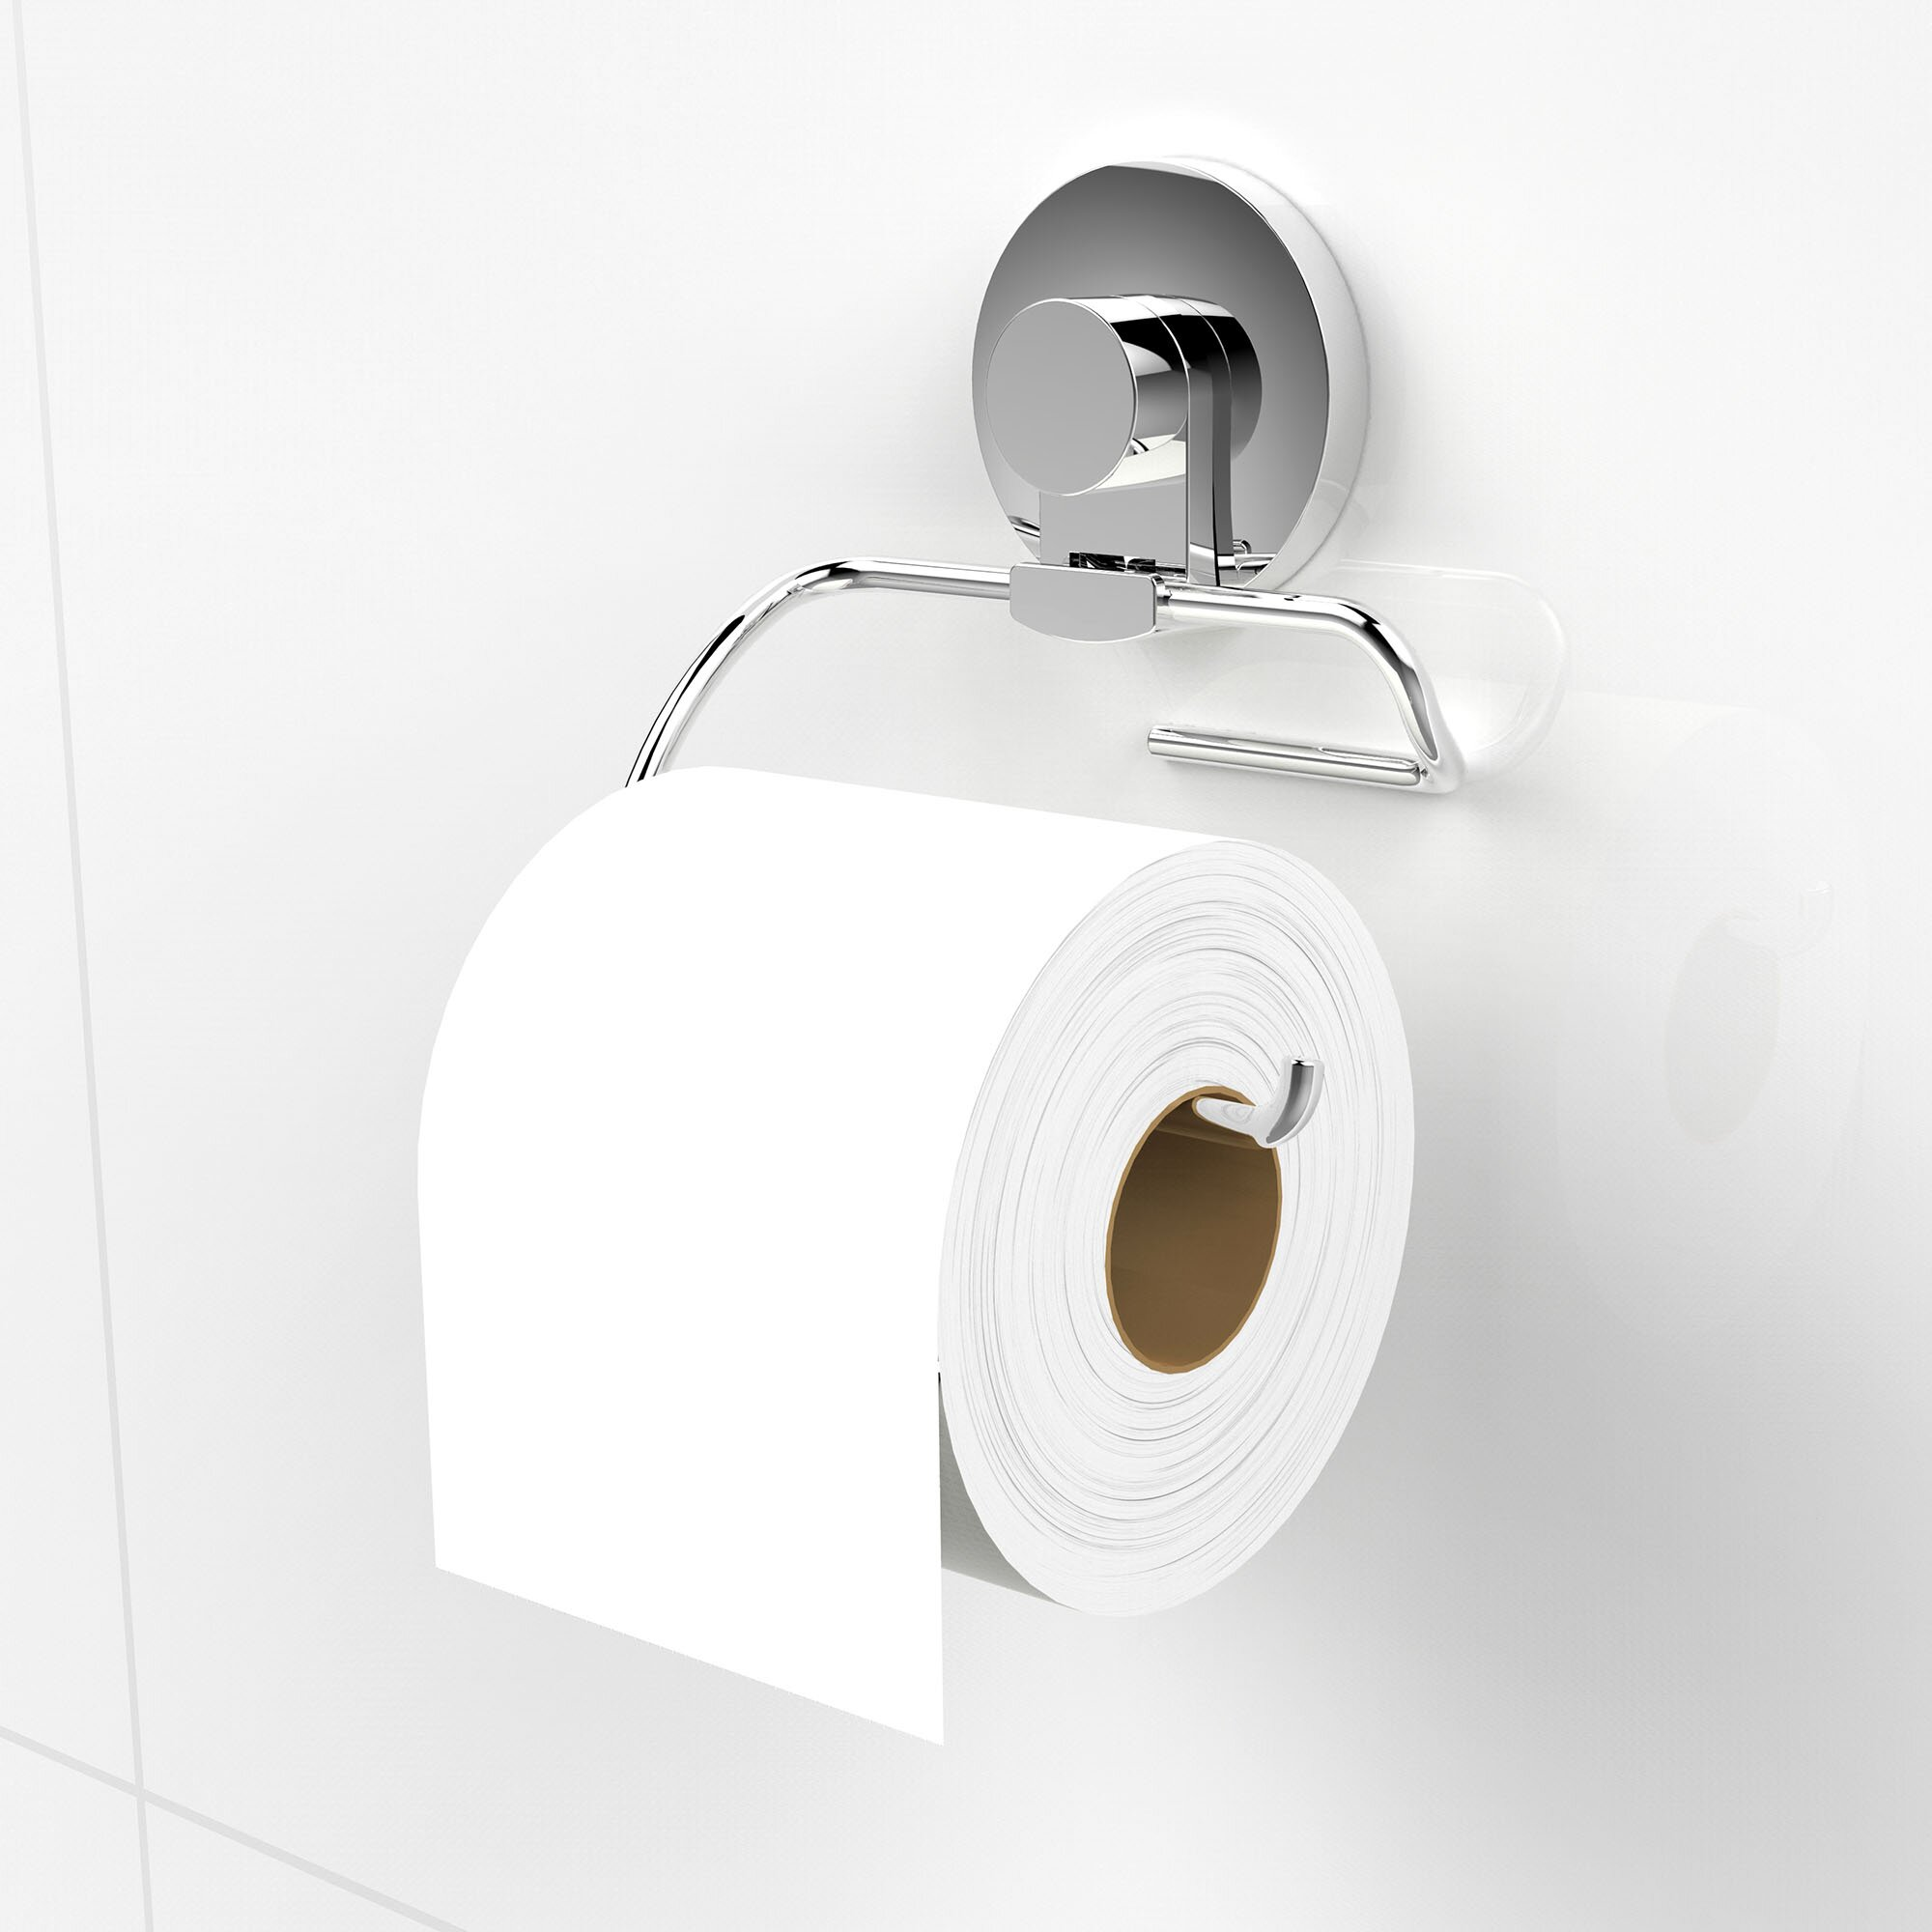 everloc xpressions toliet paper holder instruction